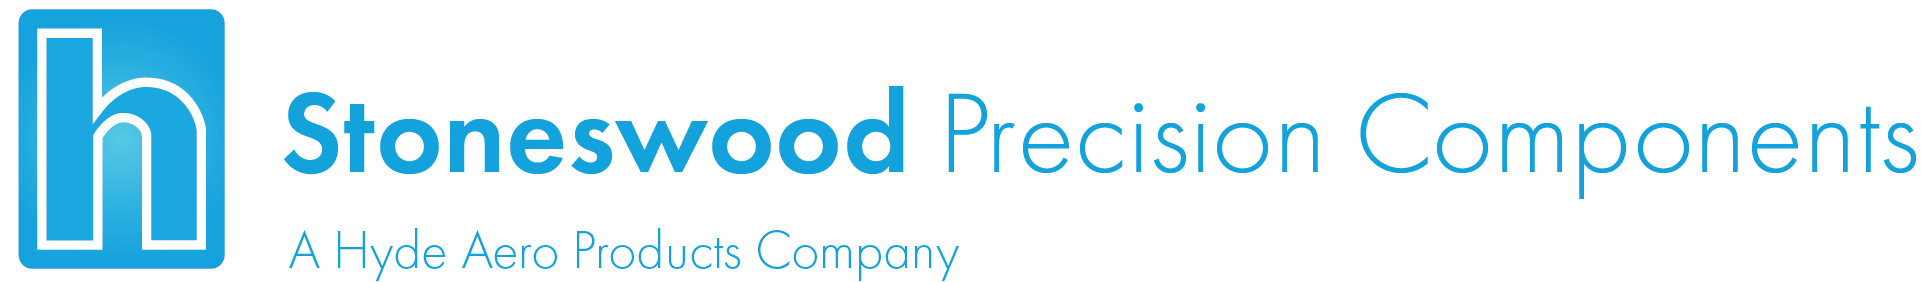 Stoneswood Precision Components Logo_1.png